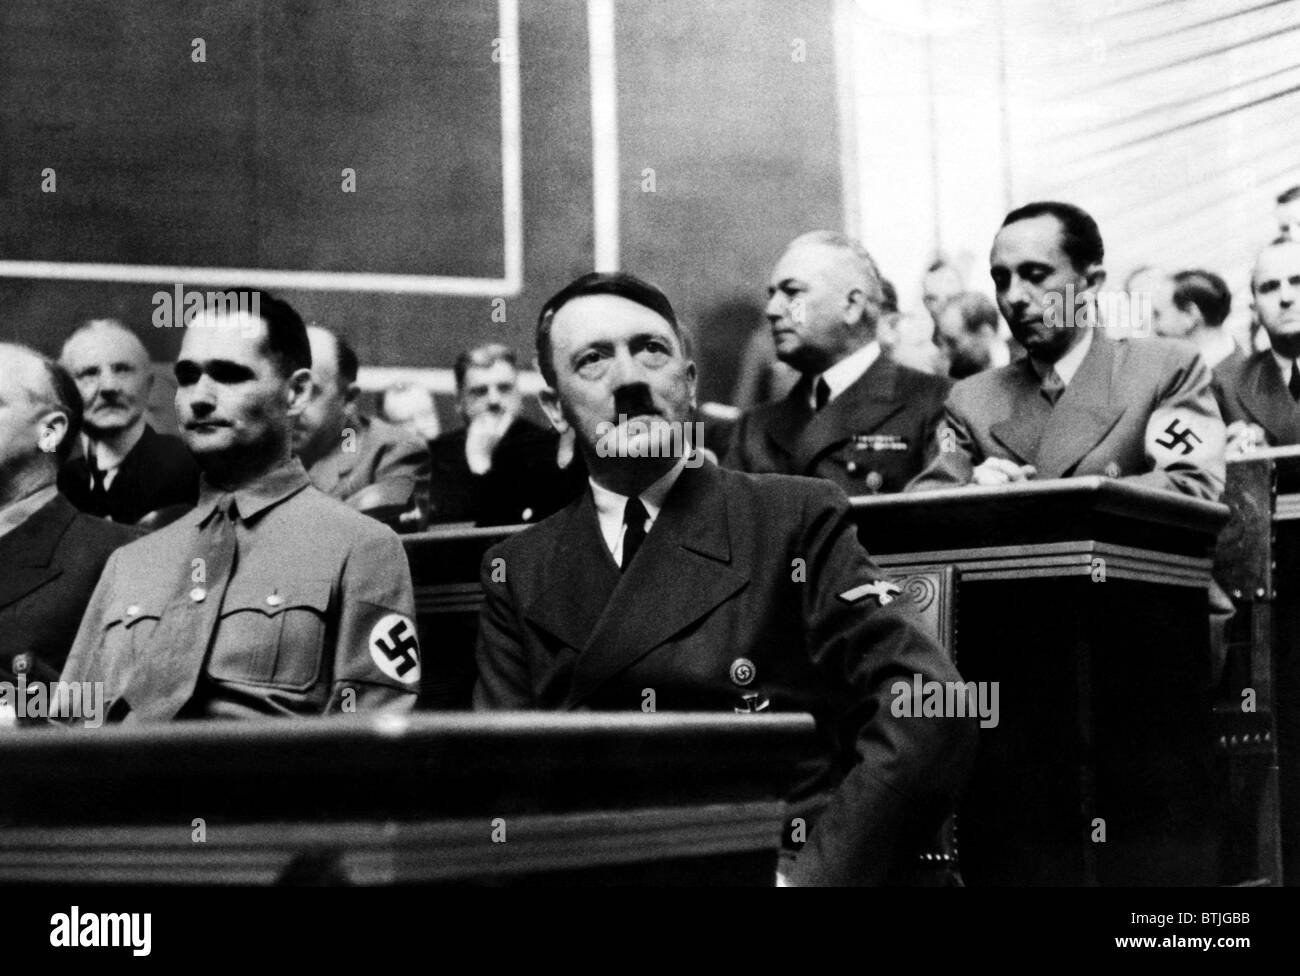 Rudolf Hess and Adolf Hitler during the Reichstag session at which Hitler gave his last warning to the British Empire. - Stock Image